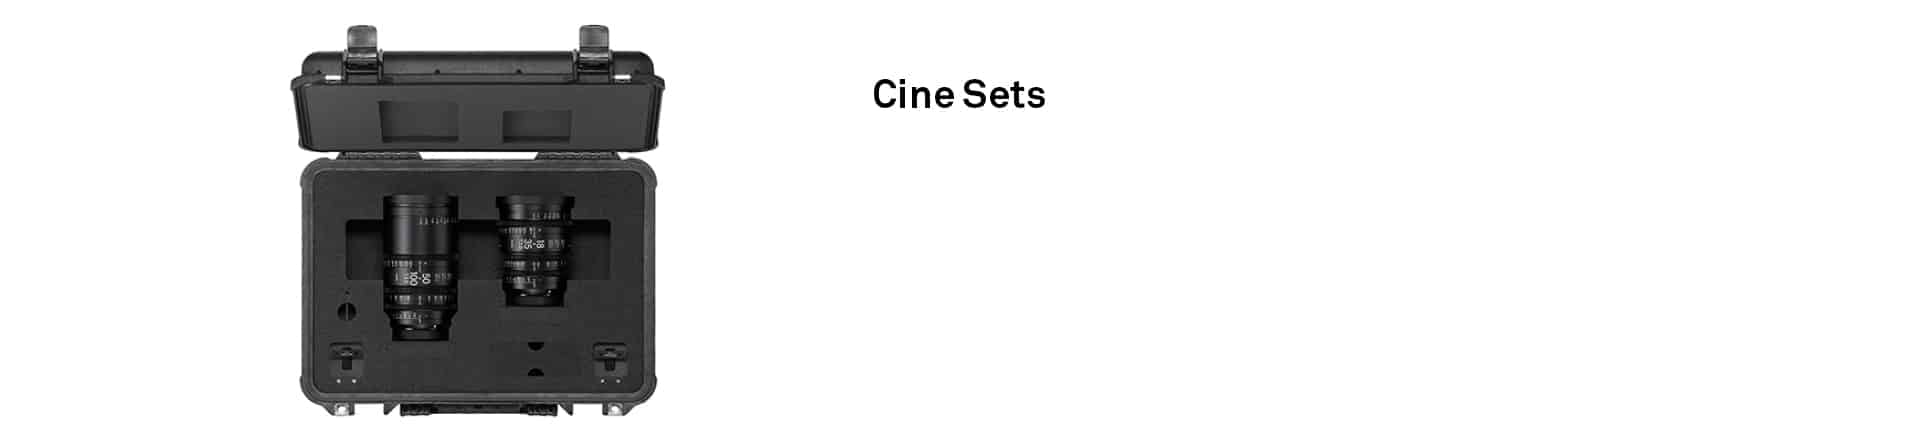 SIGMA Cine Sets